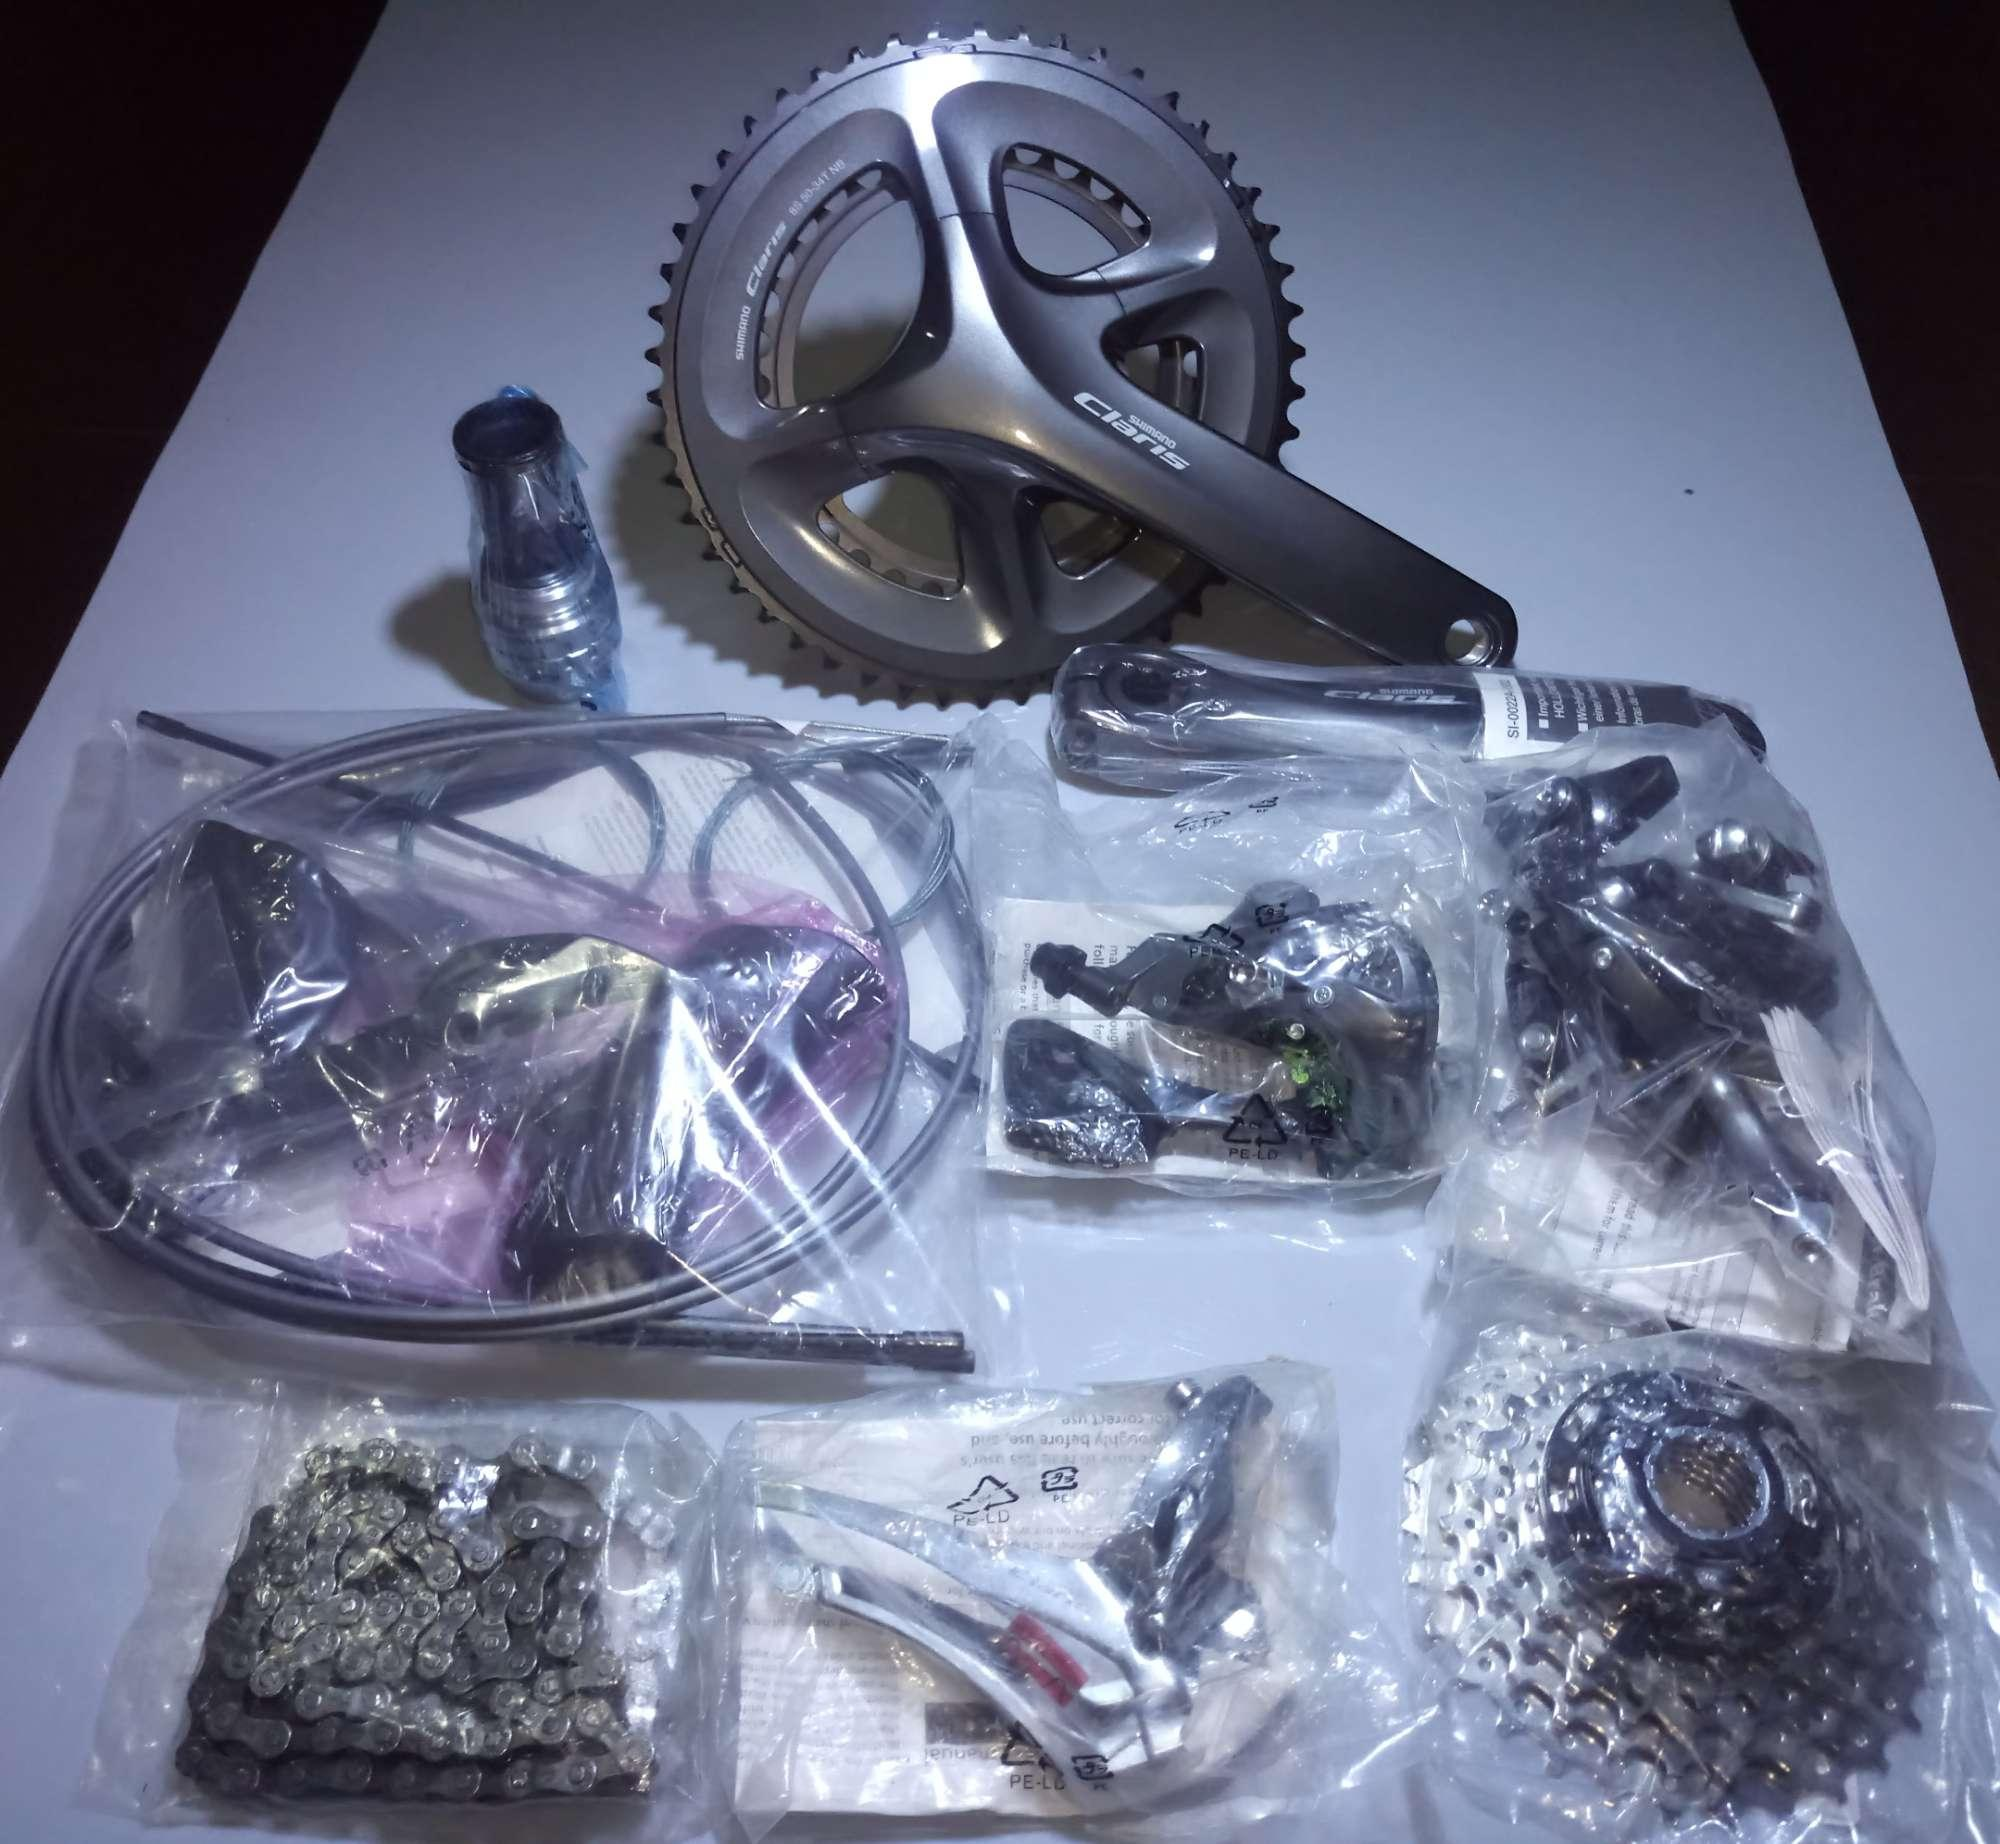 d8614f52f5a Shimano Philippines: Shimano price list - Shimano Bicycle Parts ...